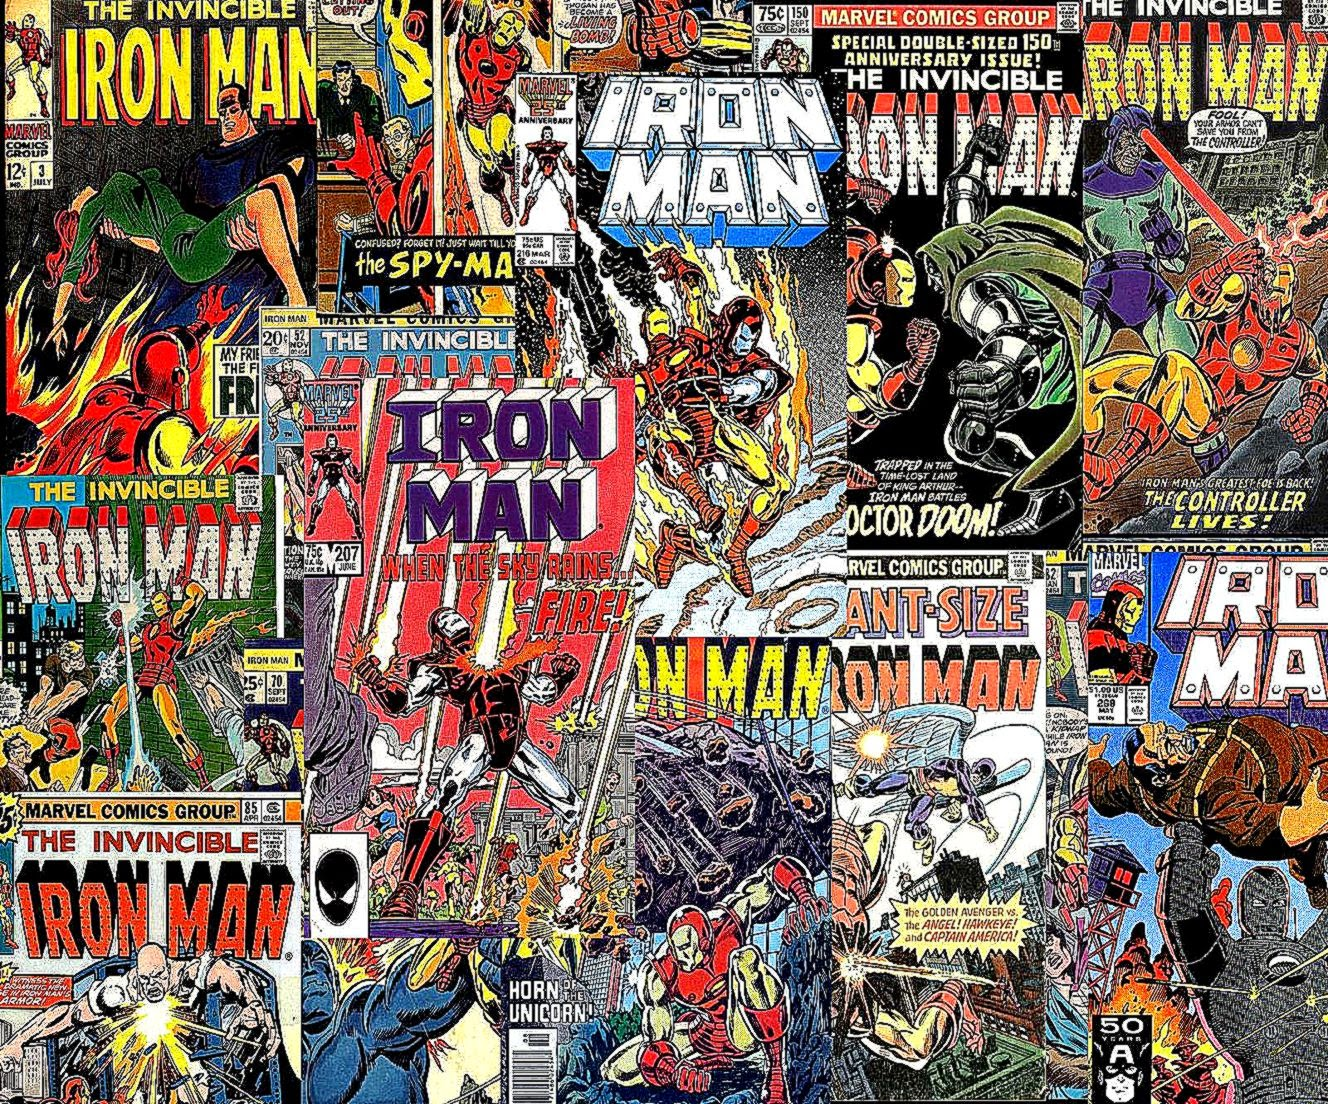 Download Vintage Comics Iron Man Wallpaper 1600x1200  Full HD